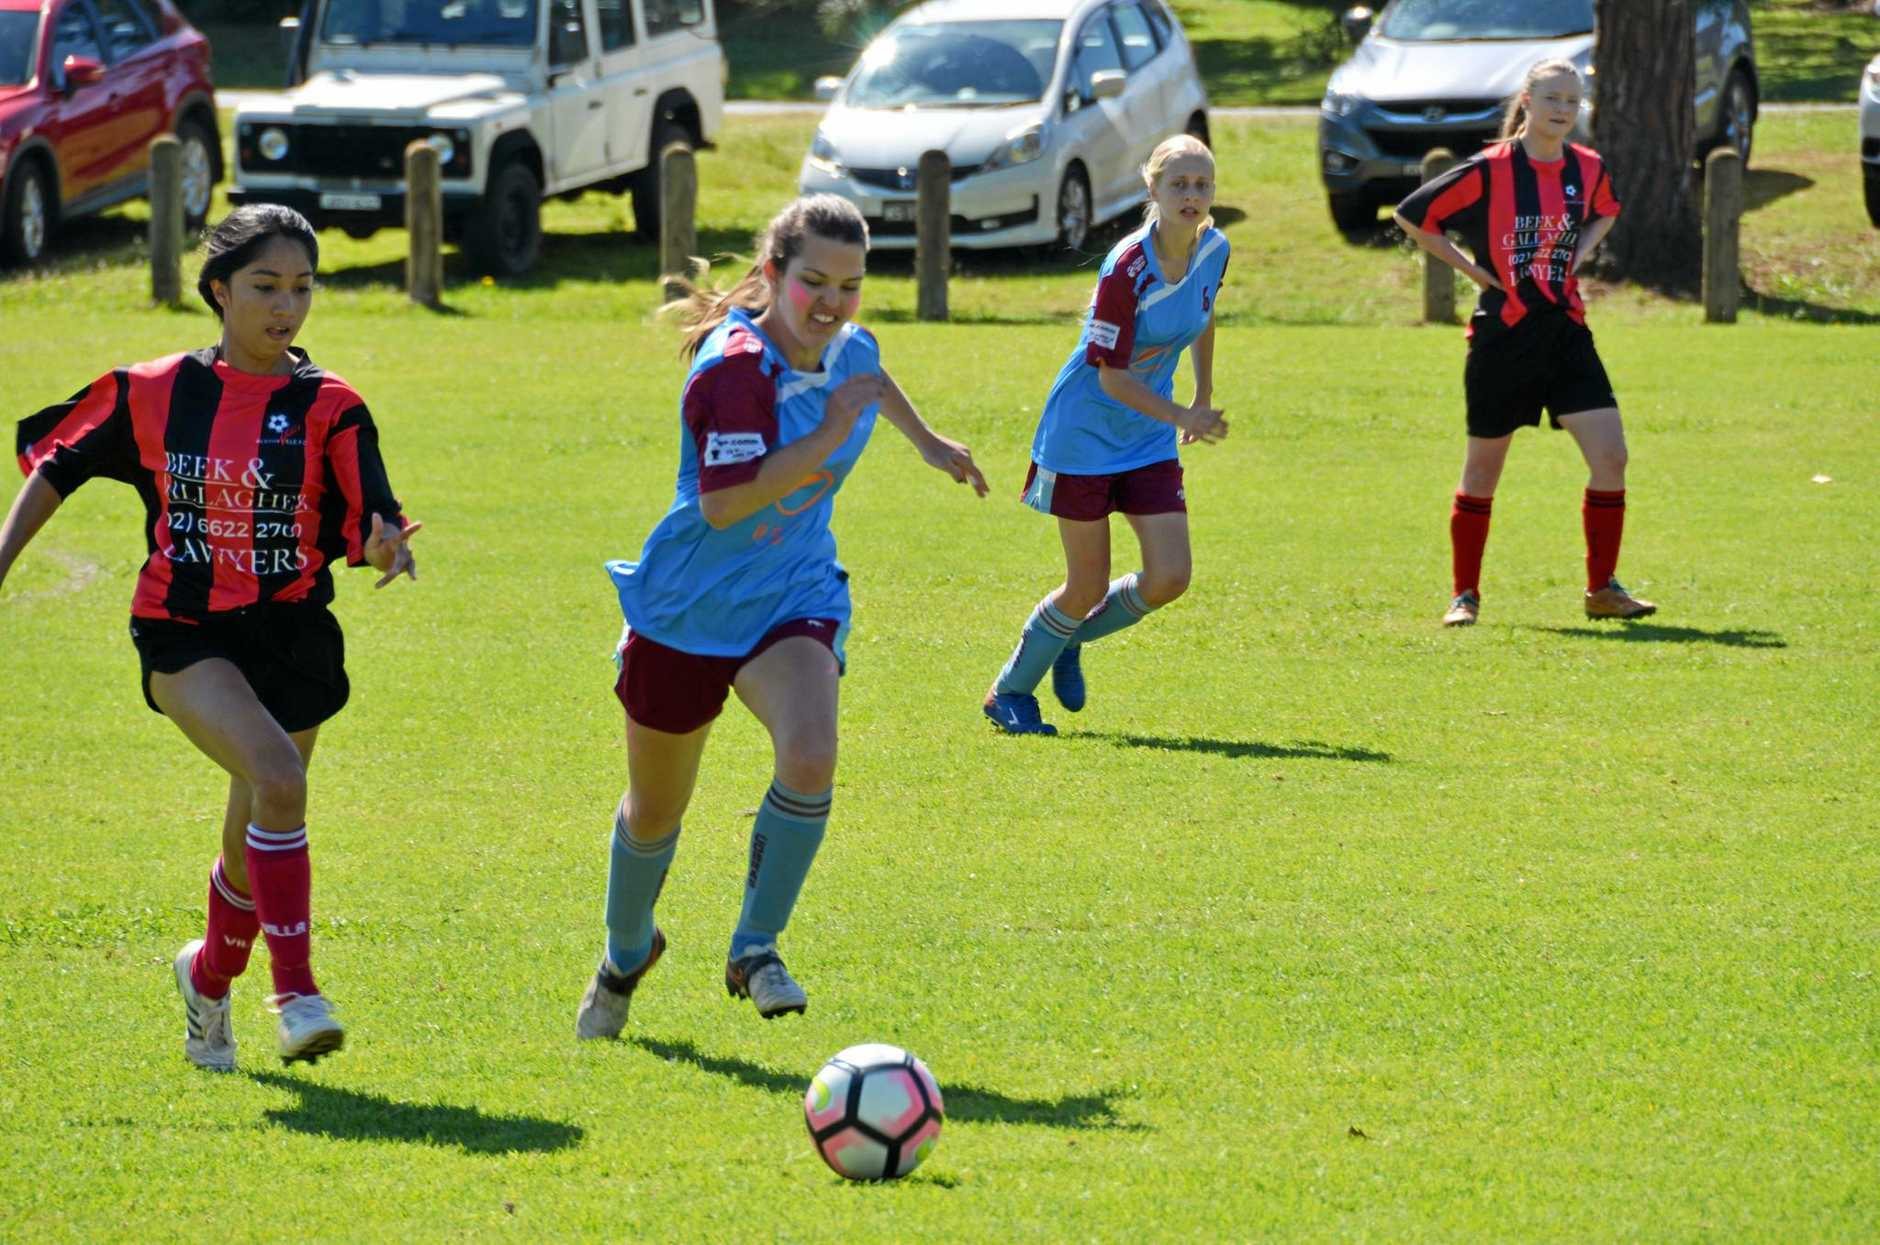 U16's Mia Casagrande from the Alstonville Strikers and Isabella Carey from the Casino Cobras fight for possession during a Oceania Cup match.